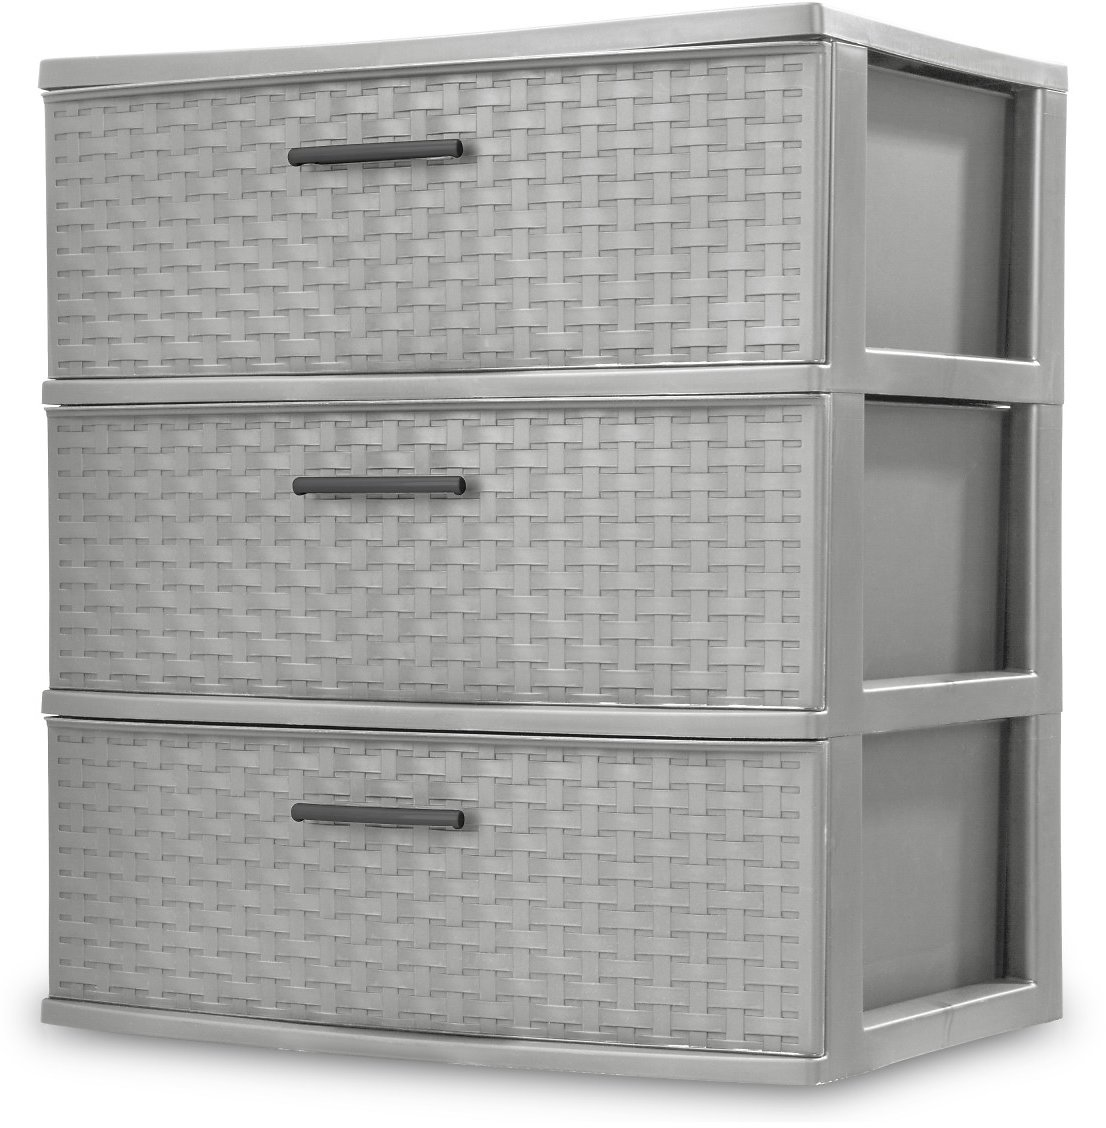 Sterilite, 3 Drawer Wide Weave Tower, Cement